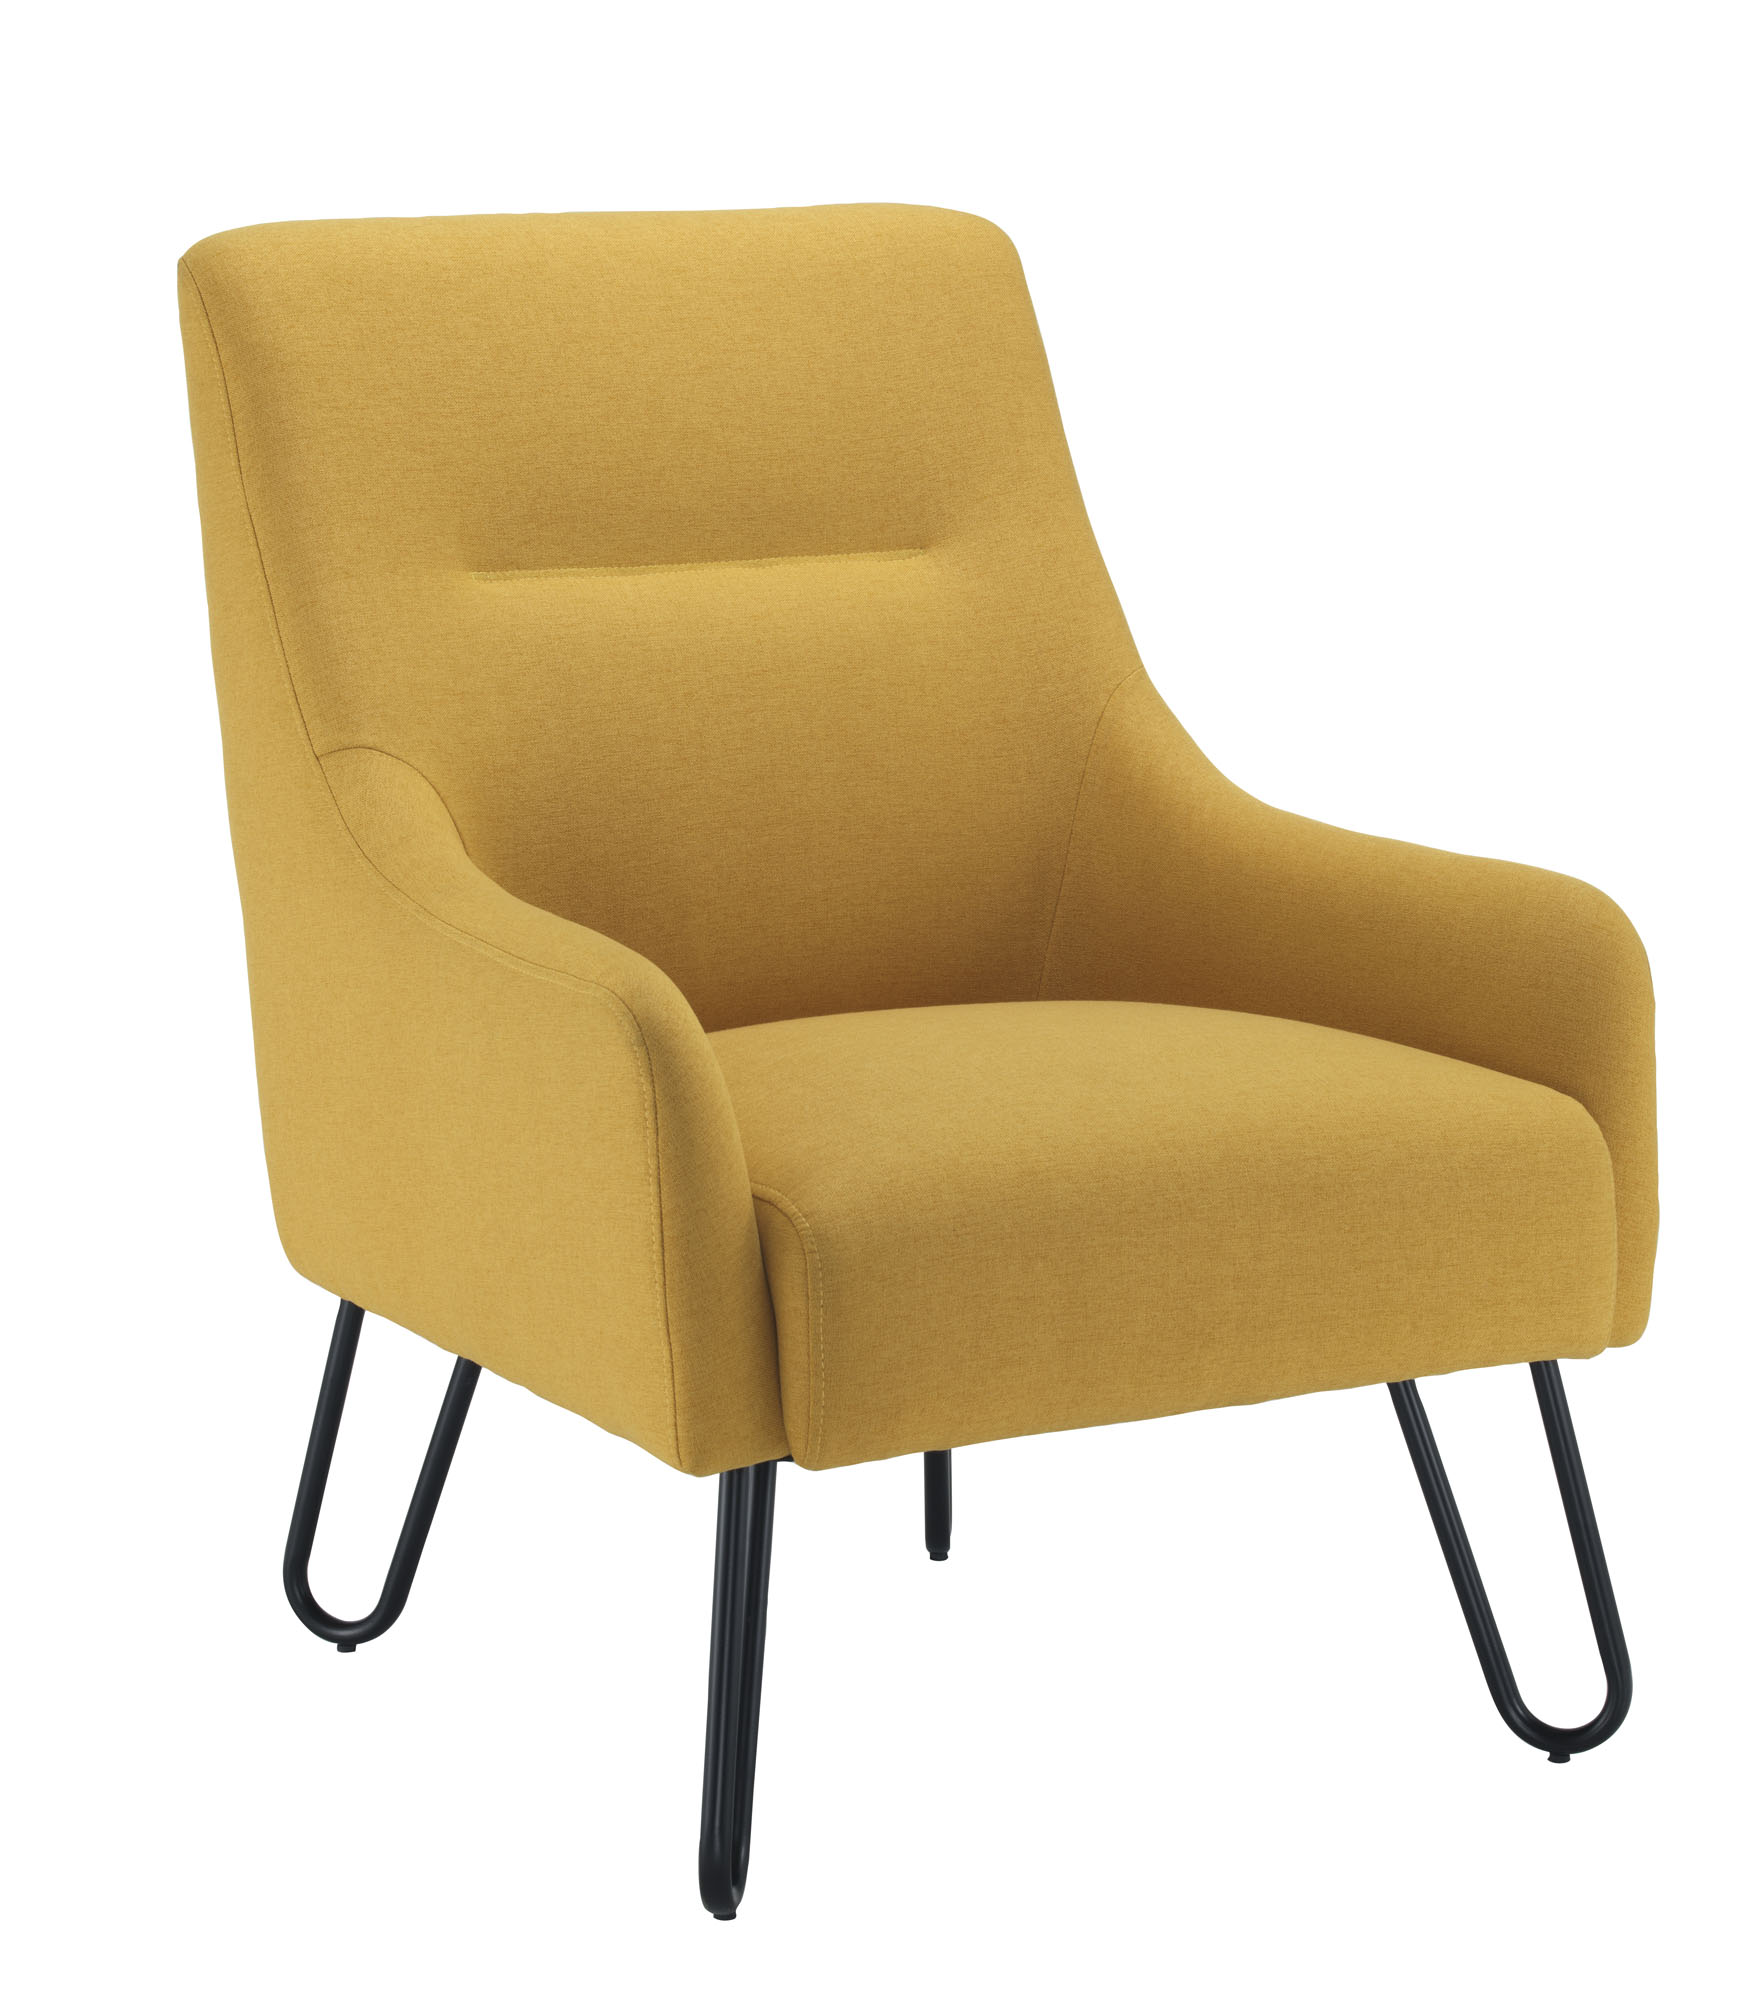 Do Not Ignore Ergonomics When Buying Reception Chairs